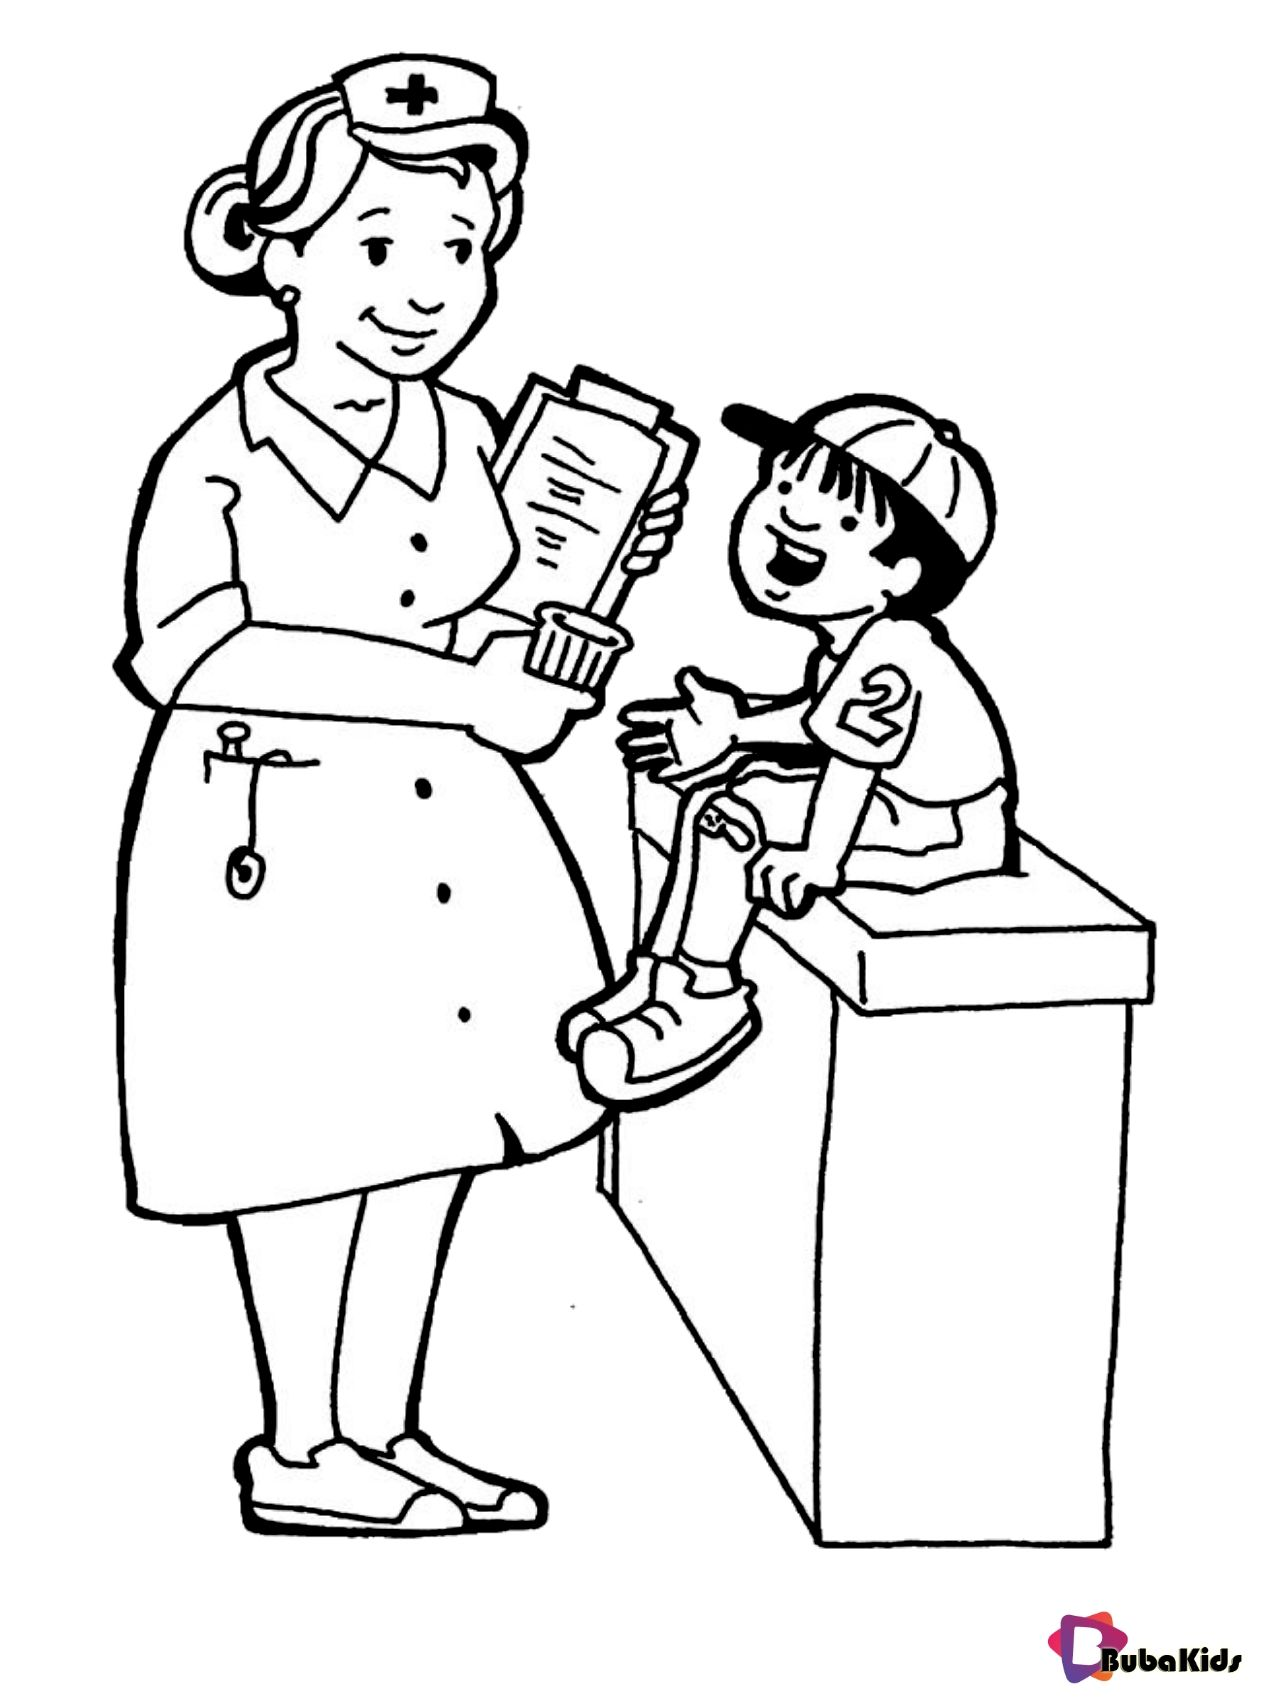 Kid Women Doctor Coloring Sheet Printable Coloring Pages For Kids Coloring Pages Preschool Coloring Pages